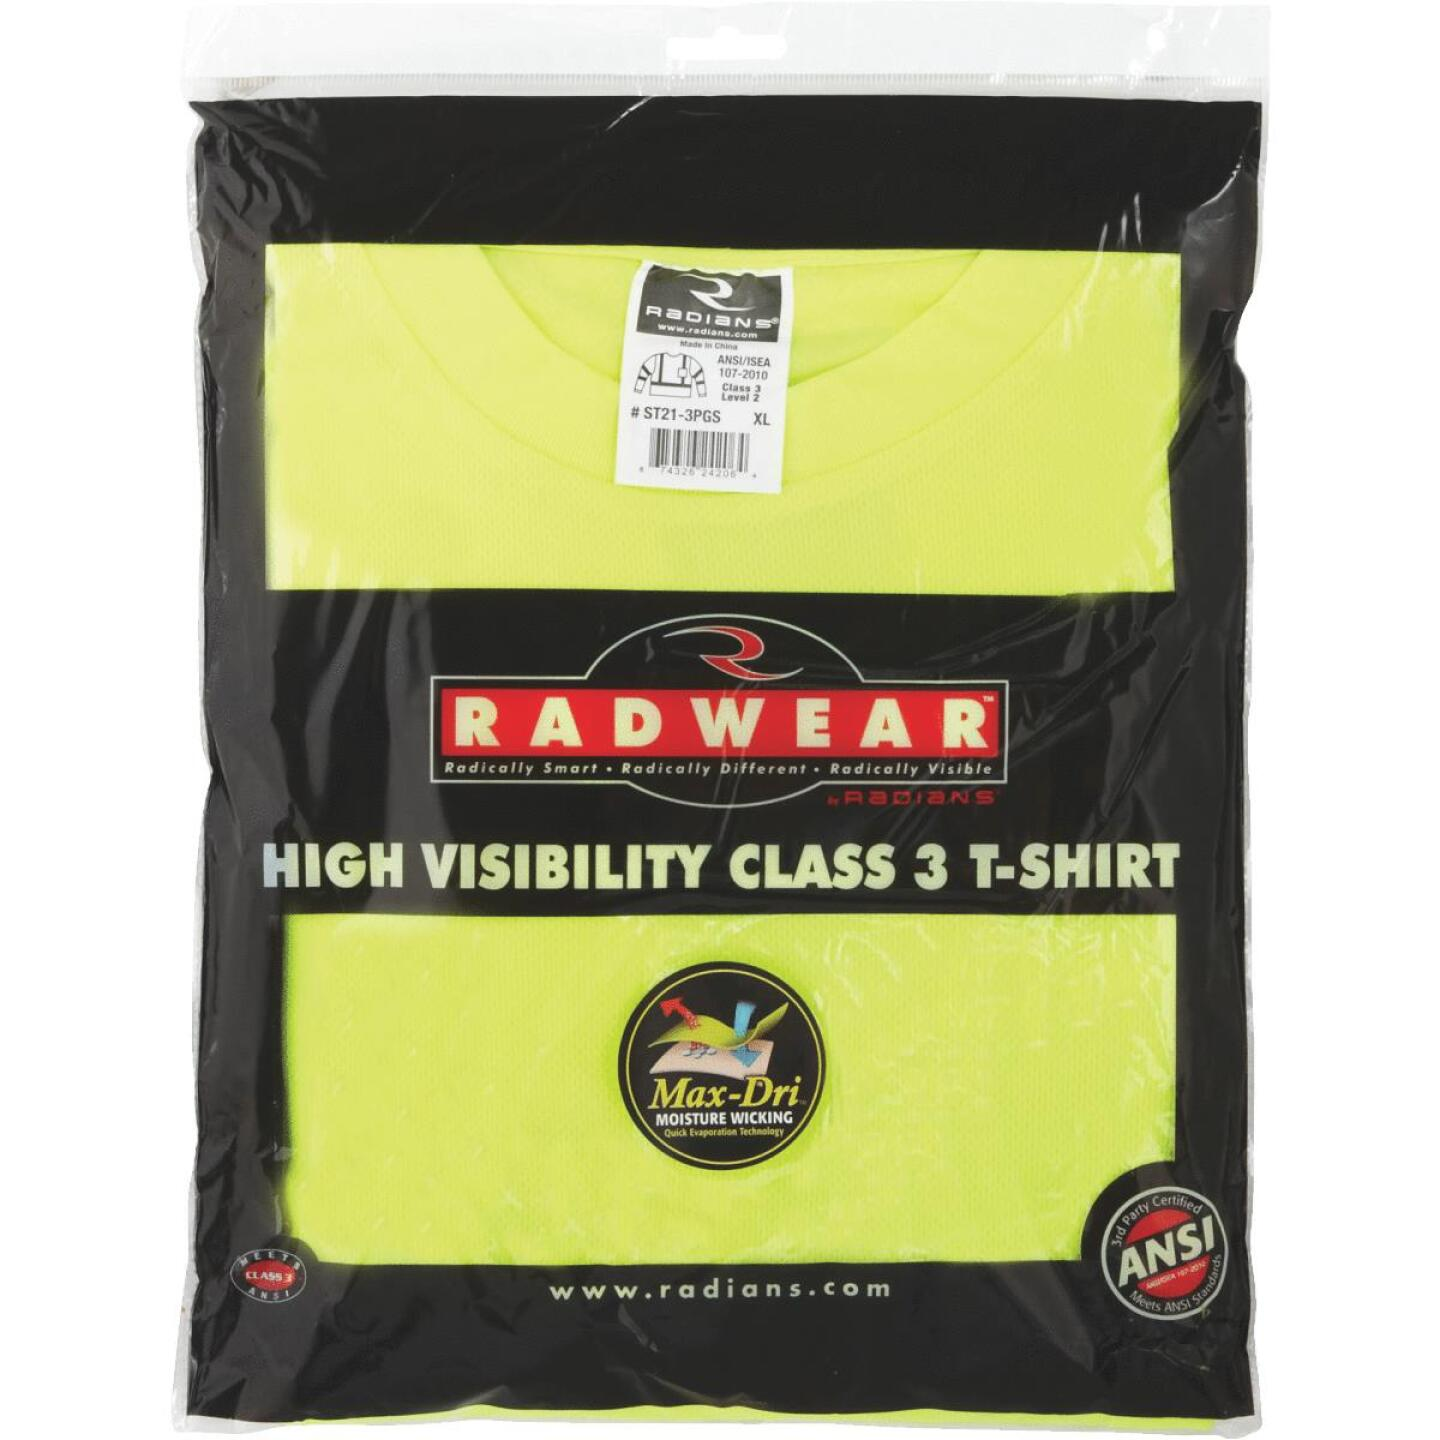 Radians Rad Wear ANSI Class 3 Hi Vis Green Safety T-Shirt XL Image 2